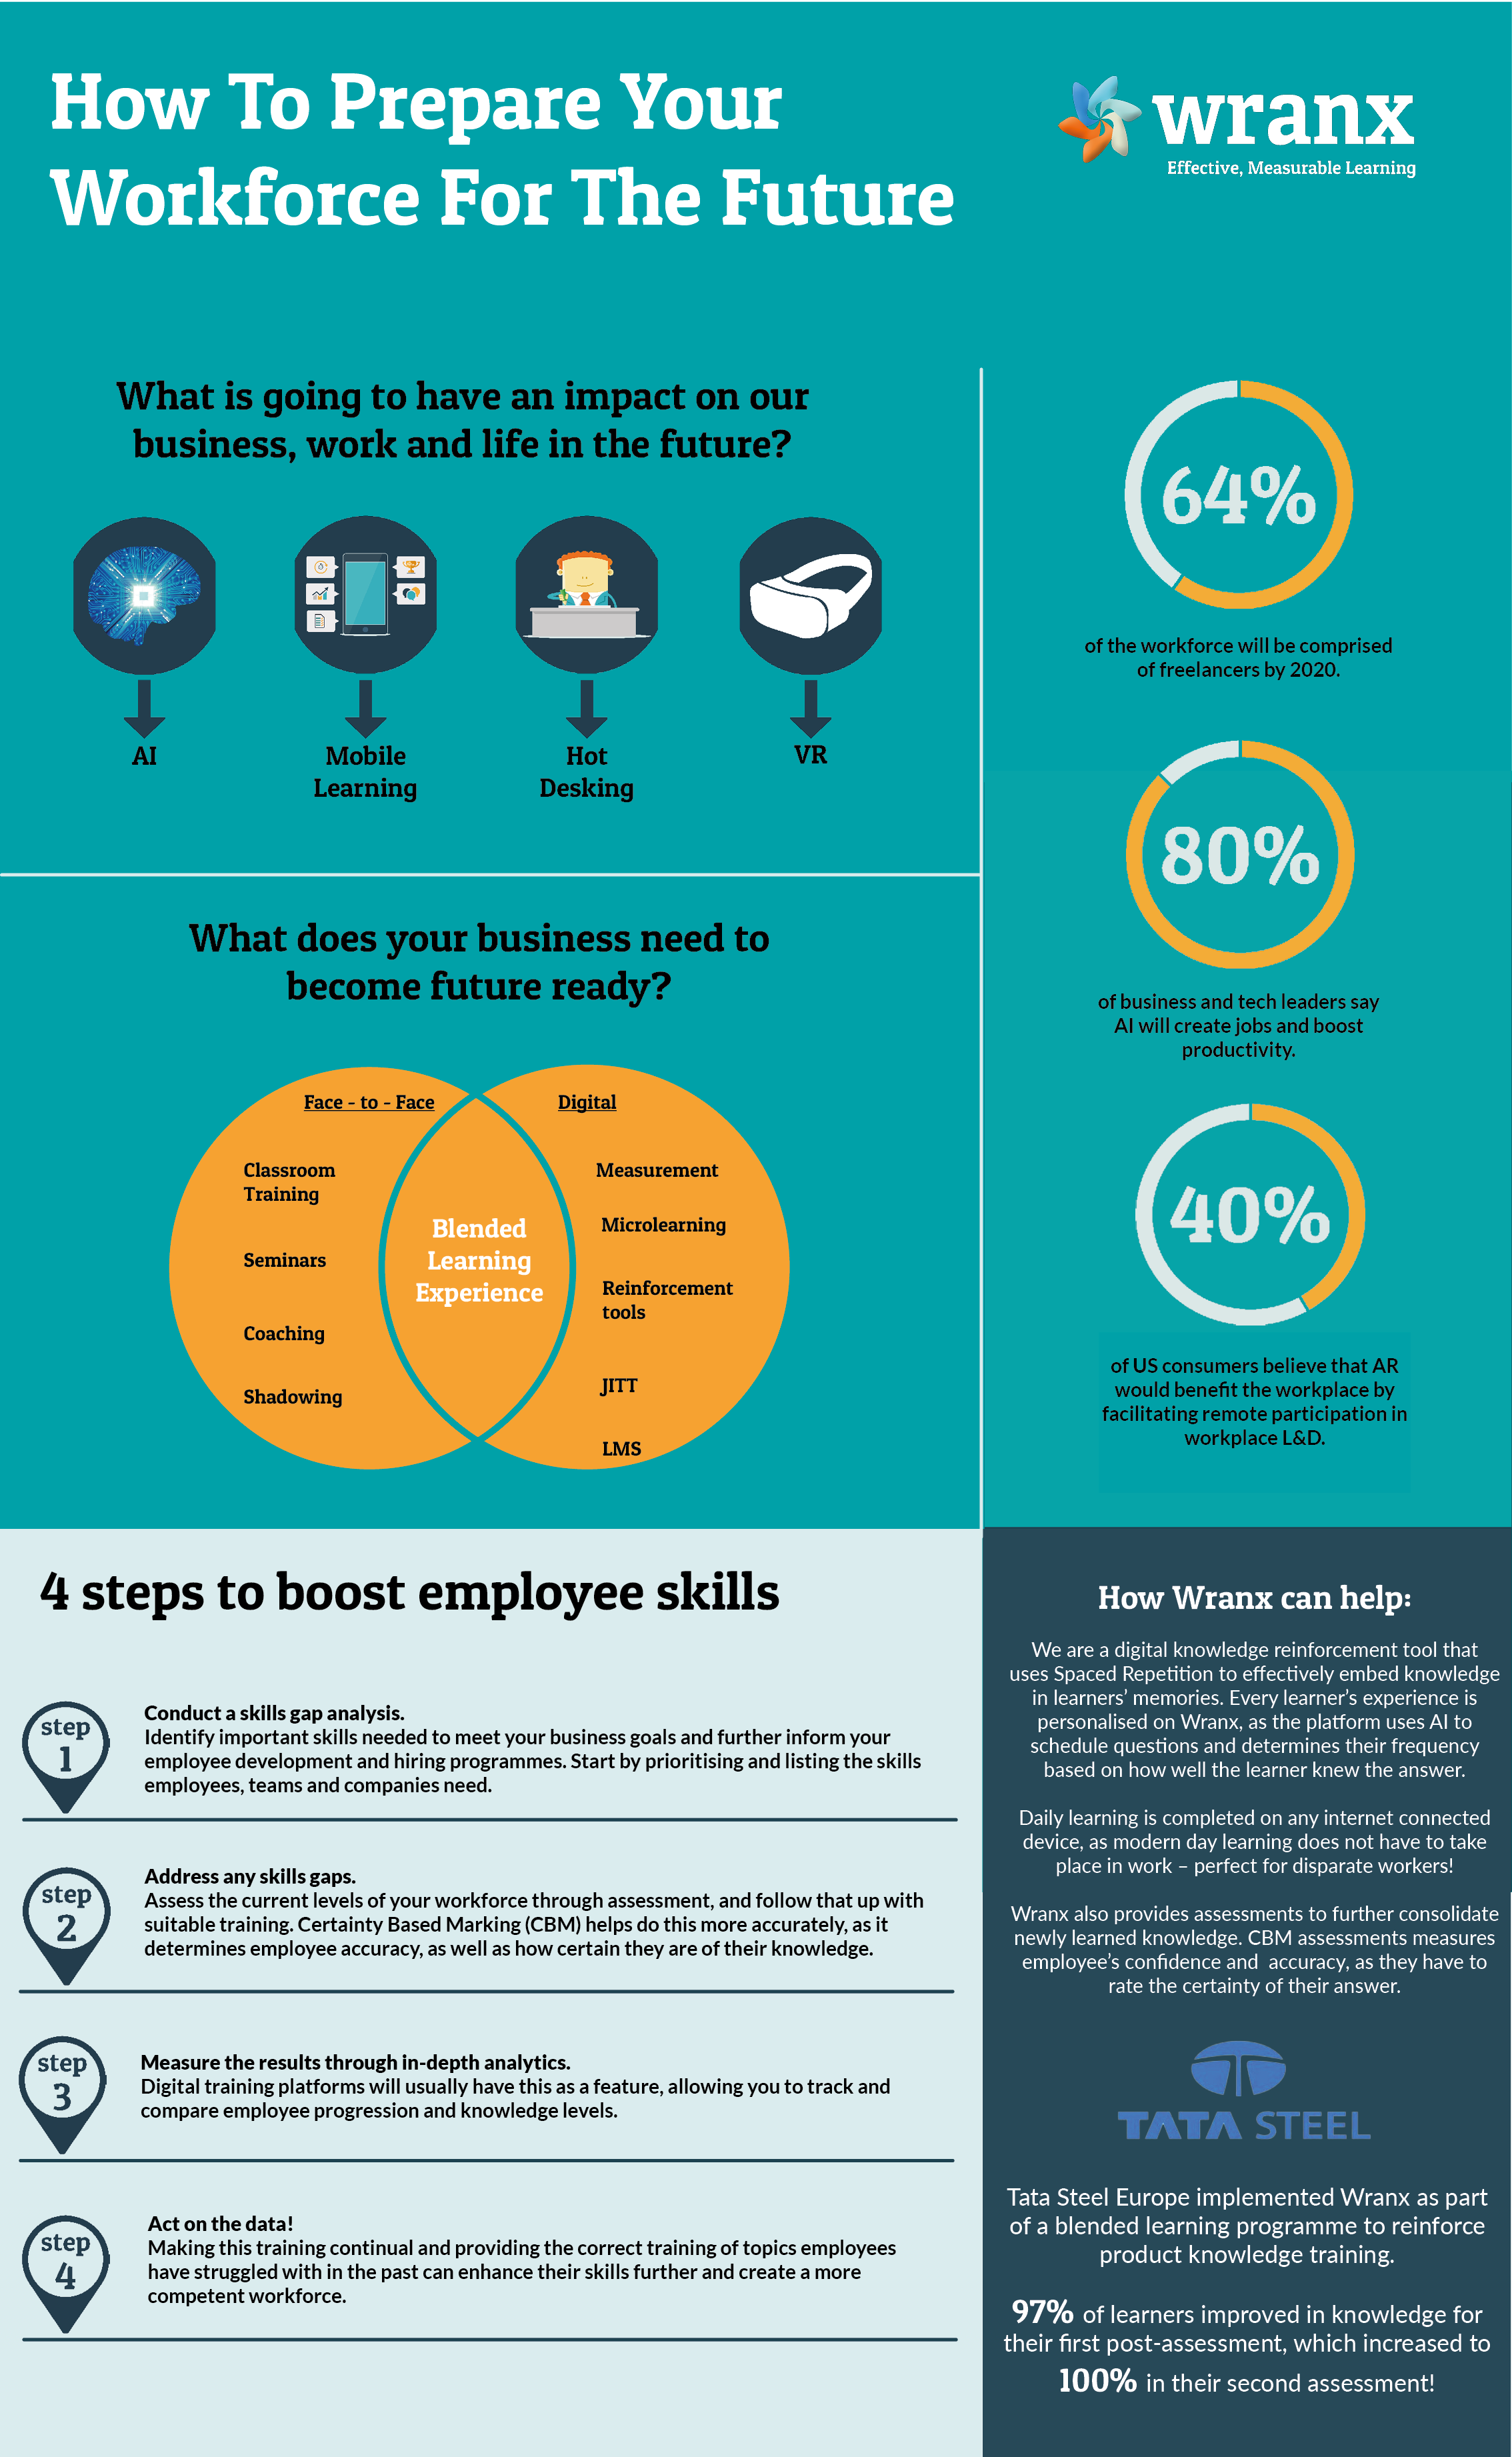 How to prepare your workforce for the future